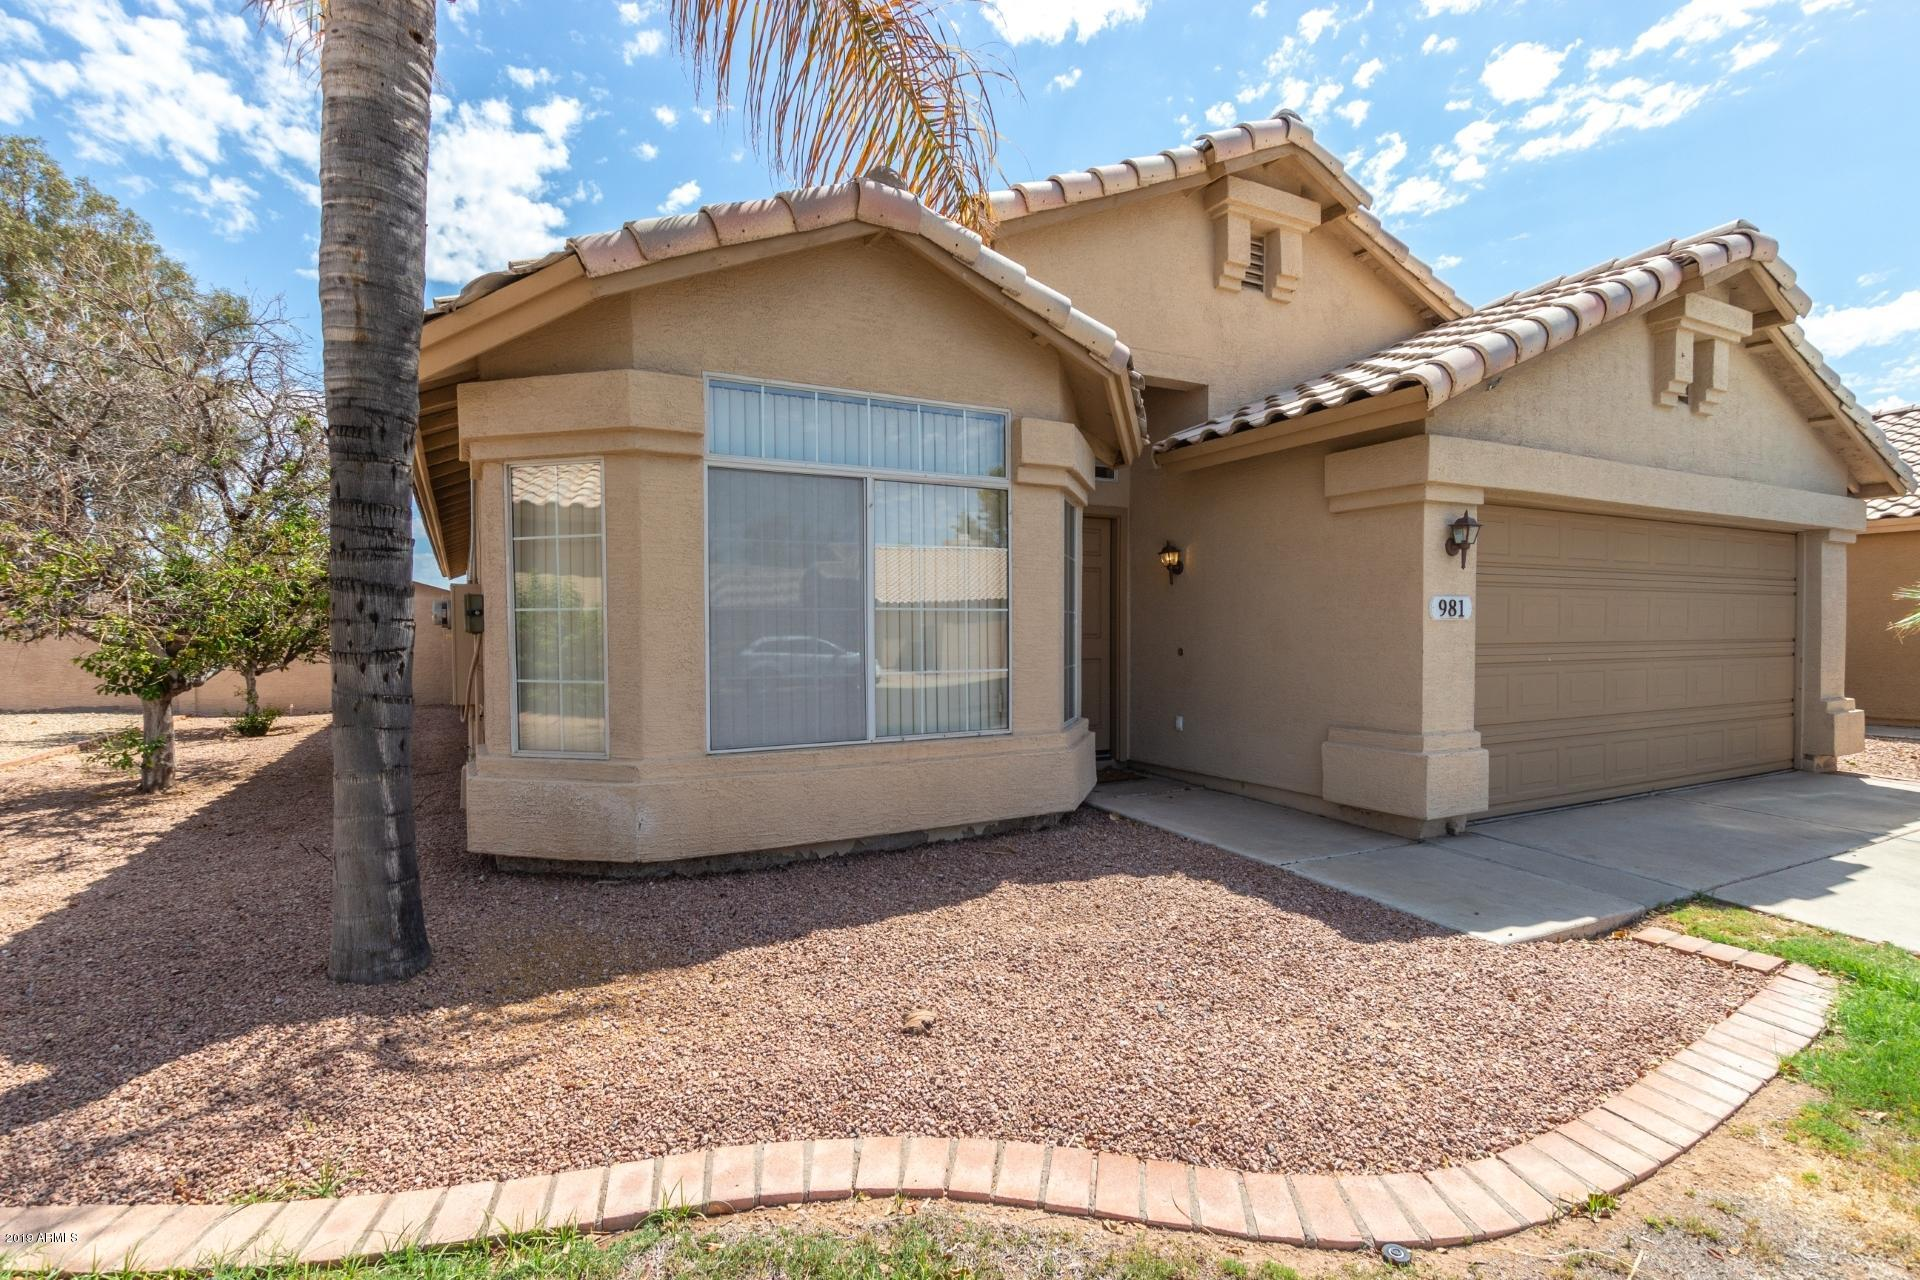 Photo of 981 N LONGMORE Street, Chandler, AZ 85224